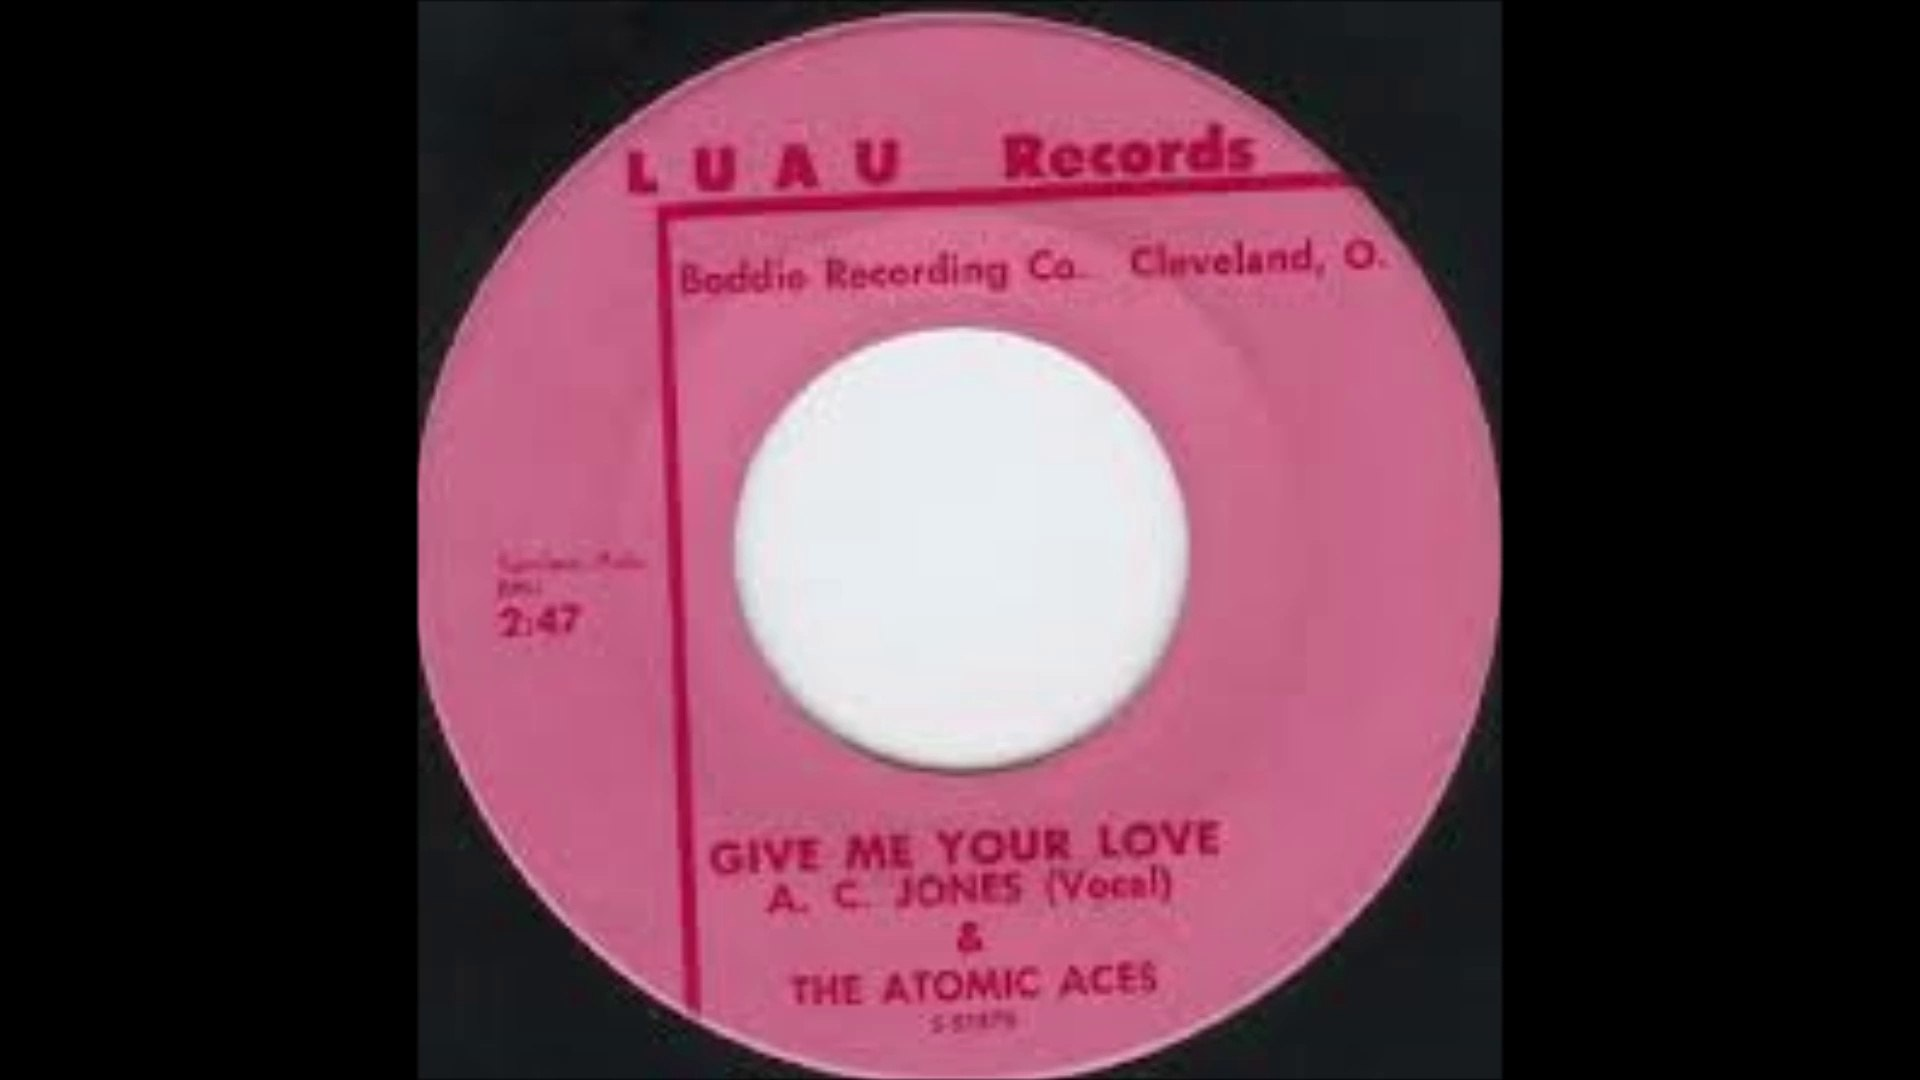 A. C. Jones & the Atomic Aces - Give me your love ((Stereo))